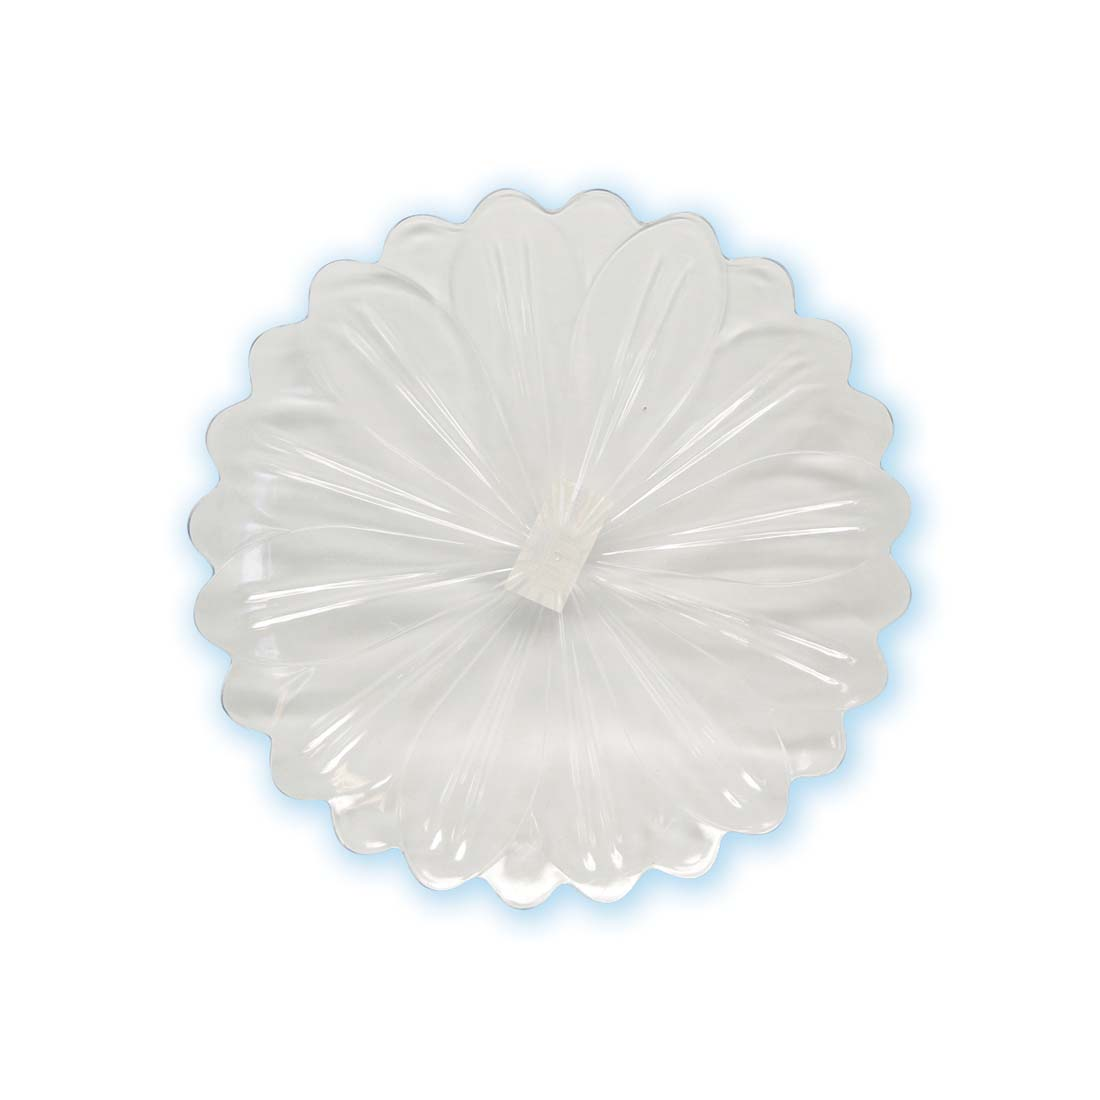 View CRYSTAL PLASTIC TRAY 11 INCH SCALLOPED FLOWER DESIGN